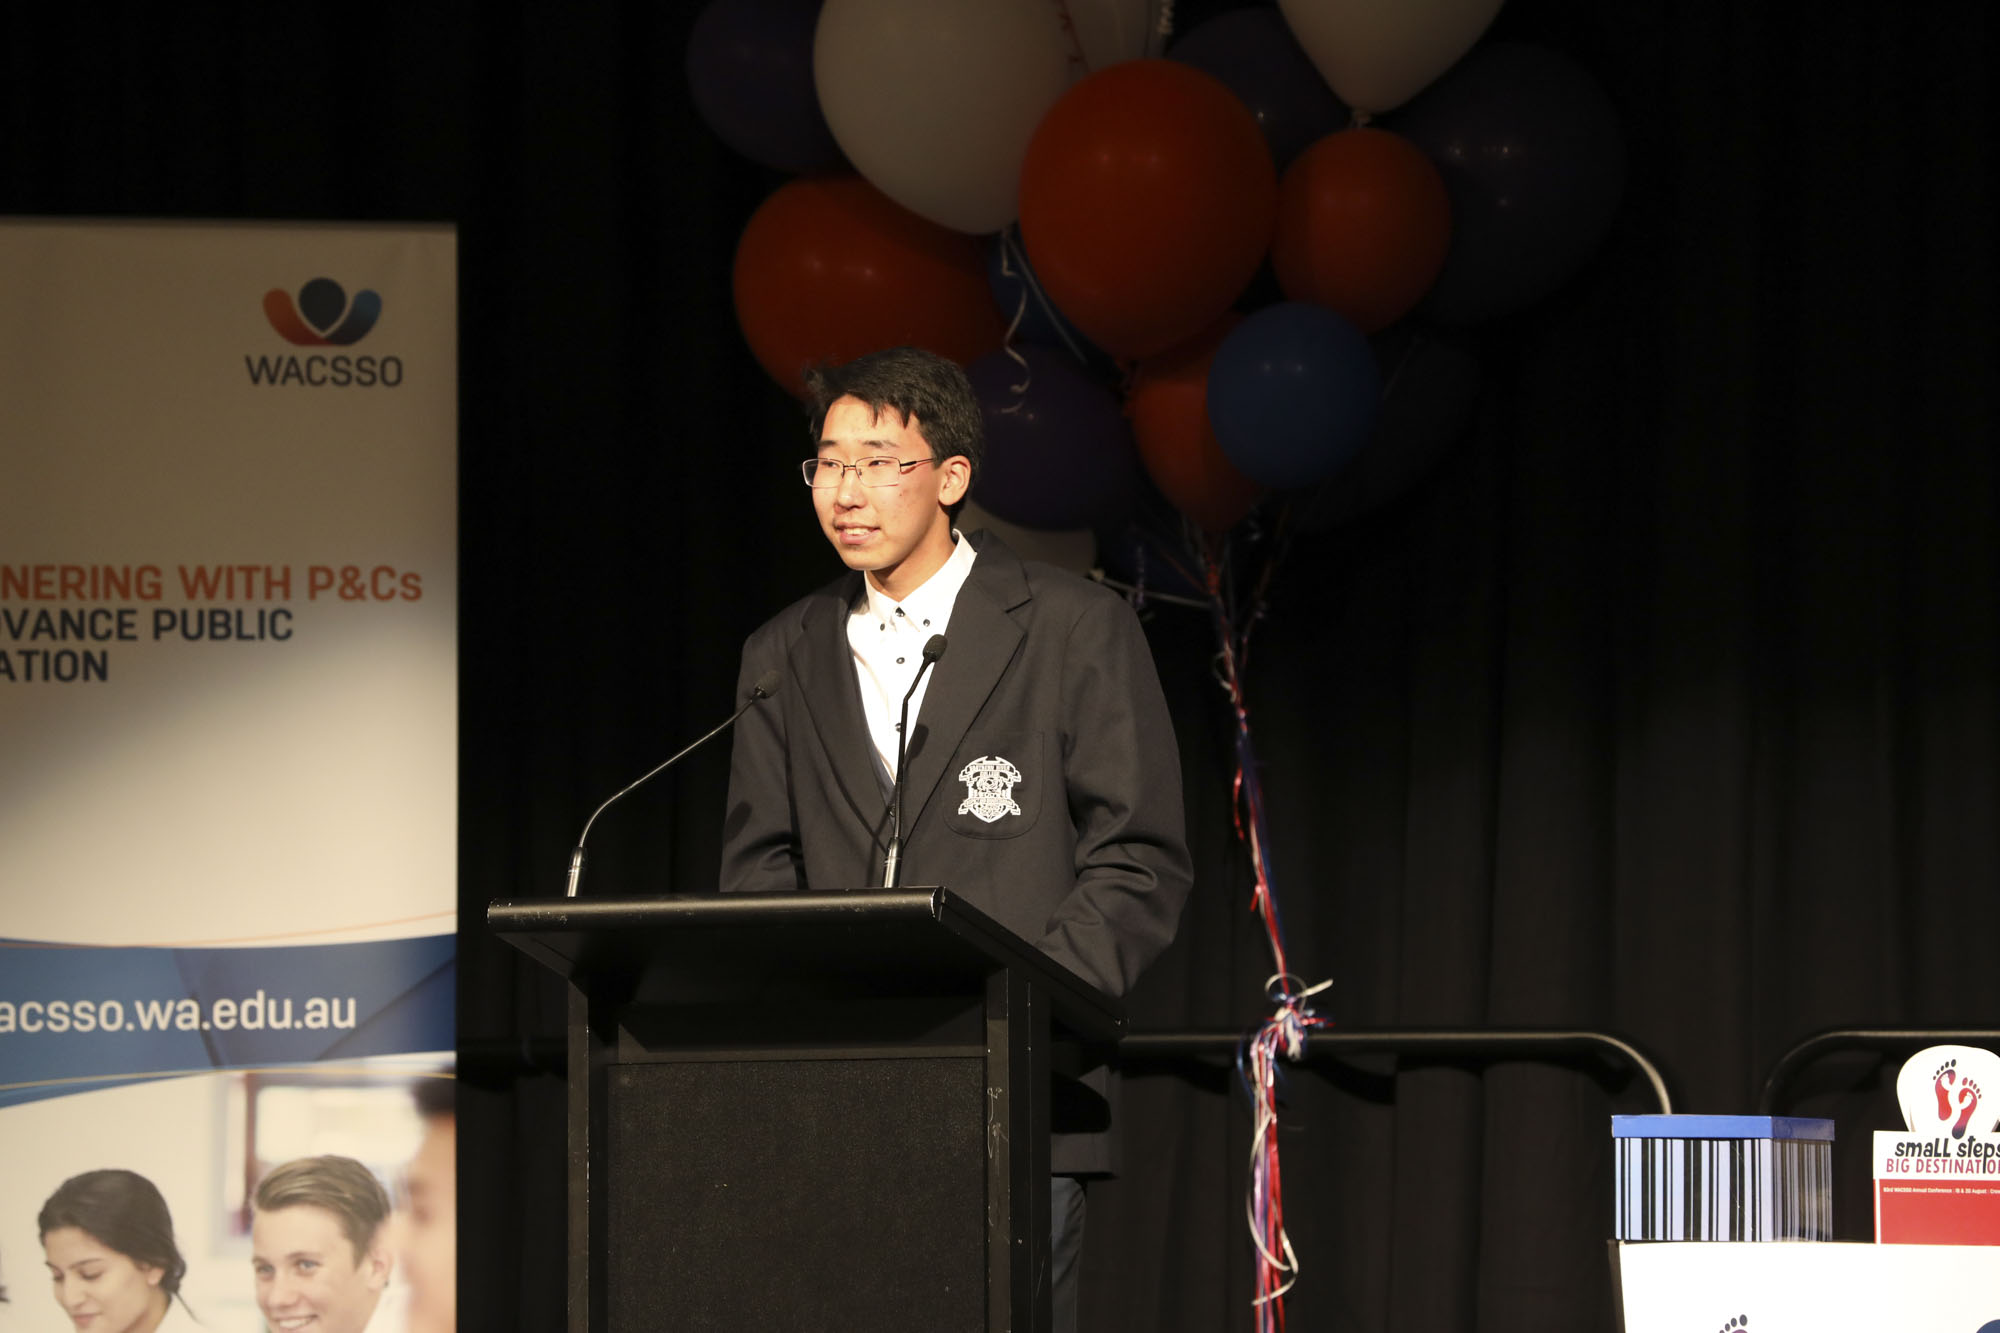 Tenuun Sanjaadorj, of Southern River College, moved to Australia with his family at the age of 7. Tenuun shared his experiences in the WA school system and his perspective on how the system could improve.